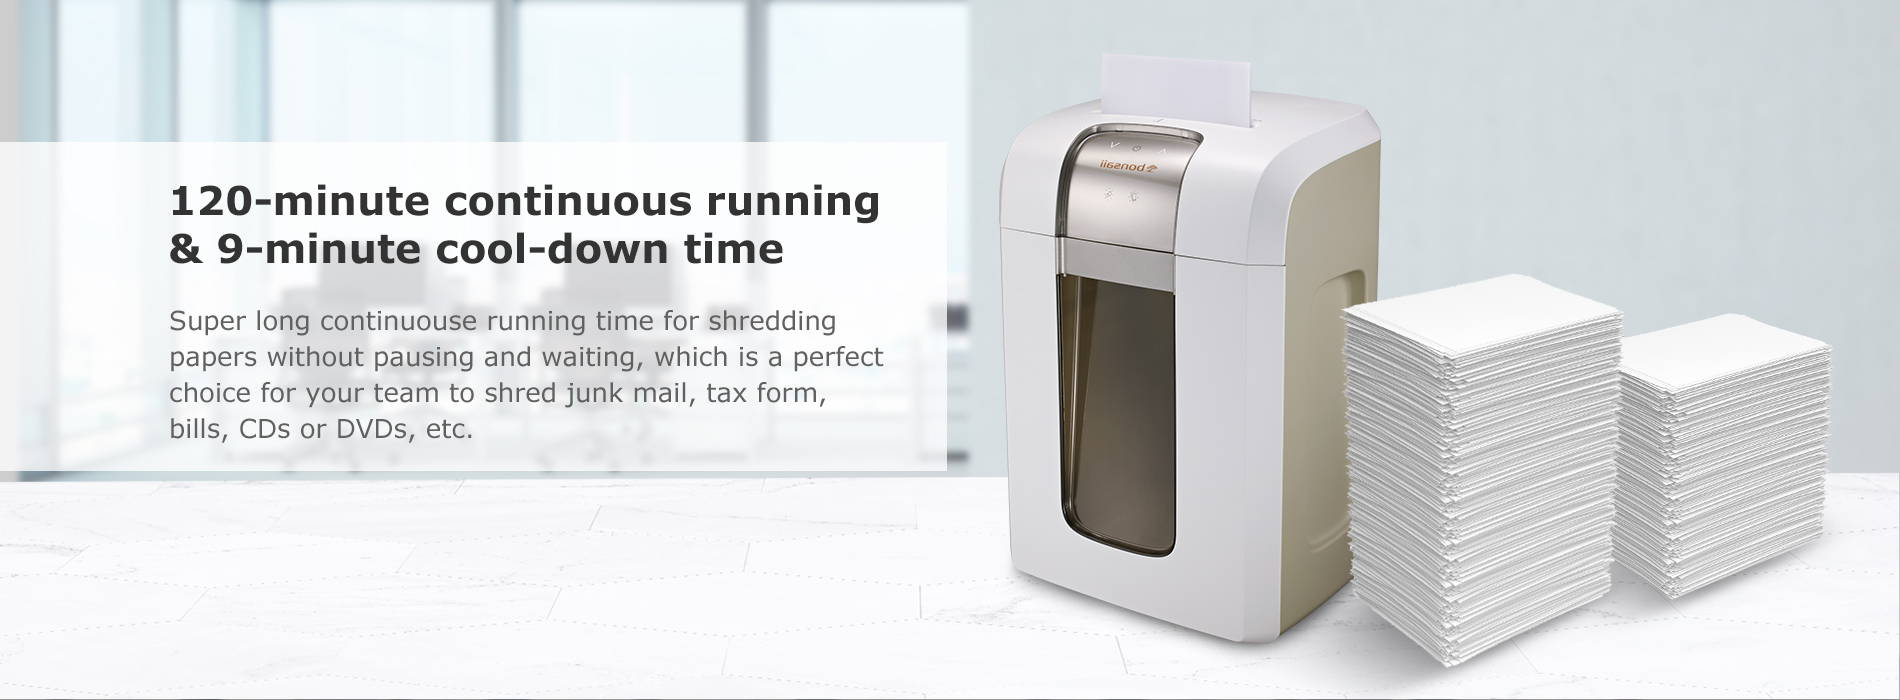 120-minute continuous running & 9-minute cool-down time  Super long continuouse running time for shredding papers without pausing and waiting, which is a perfect choice for your team to shred junk mail, tax form, bills, CDs or DVDs, etc.